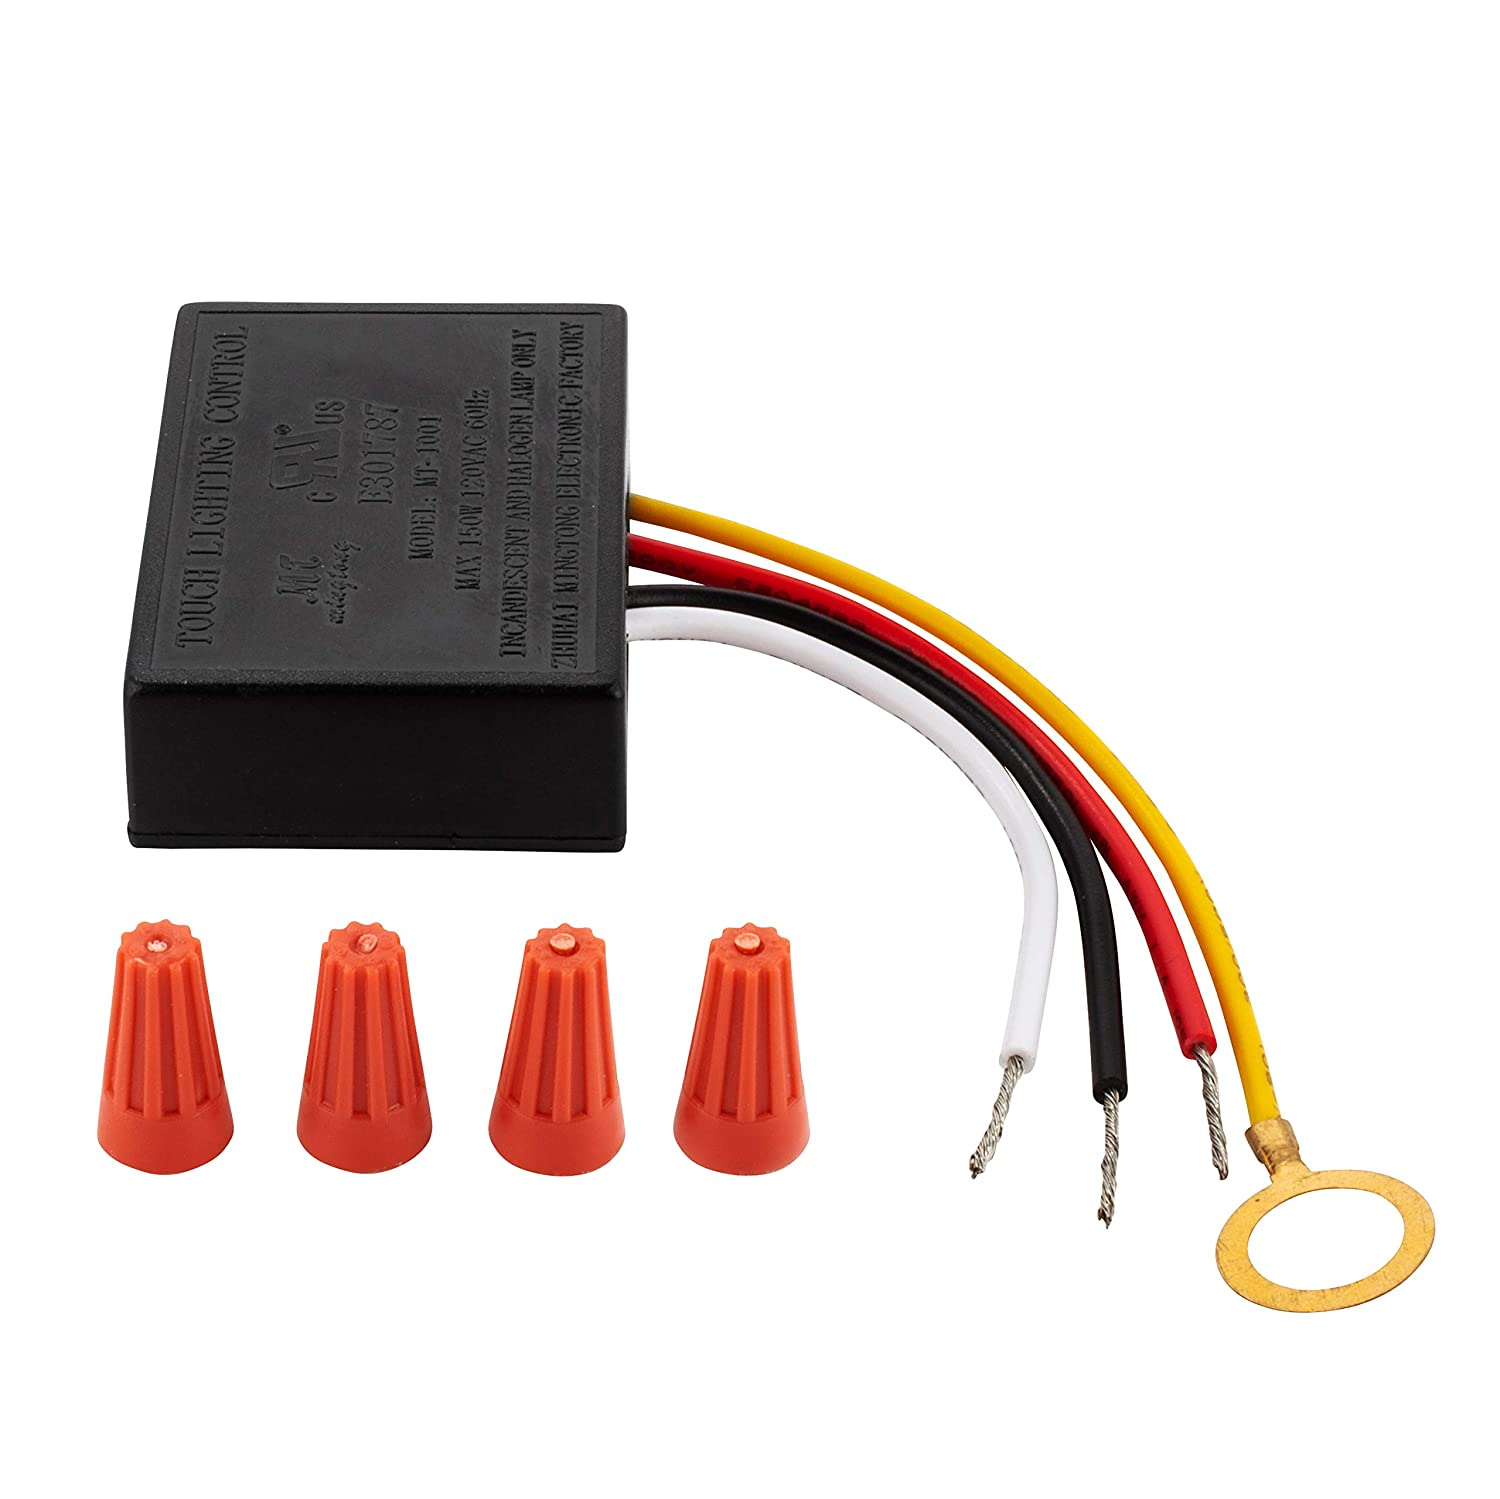 3 Way touch sensor dimmer, touch lamp repair kit control module, replacement sensor, touch switch, 150Watt.